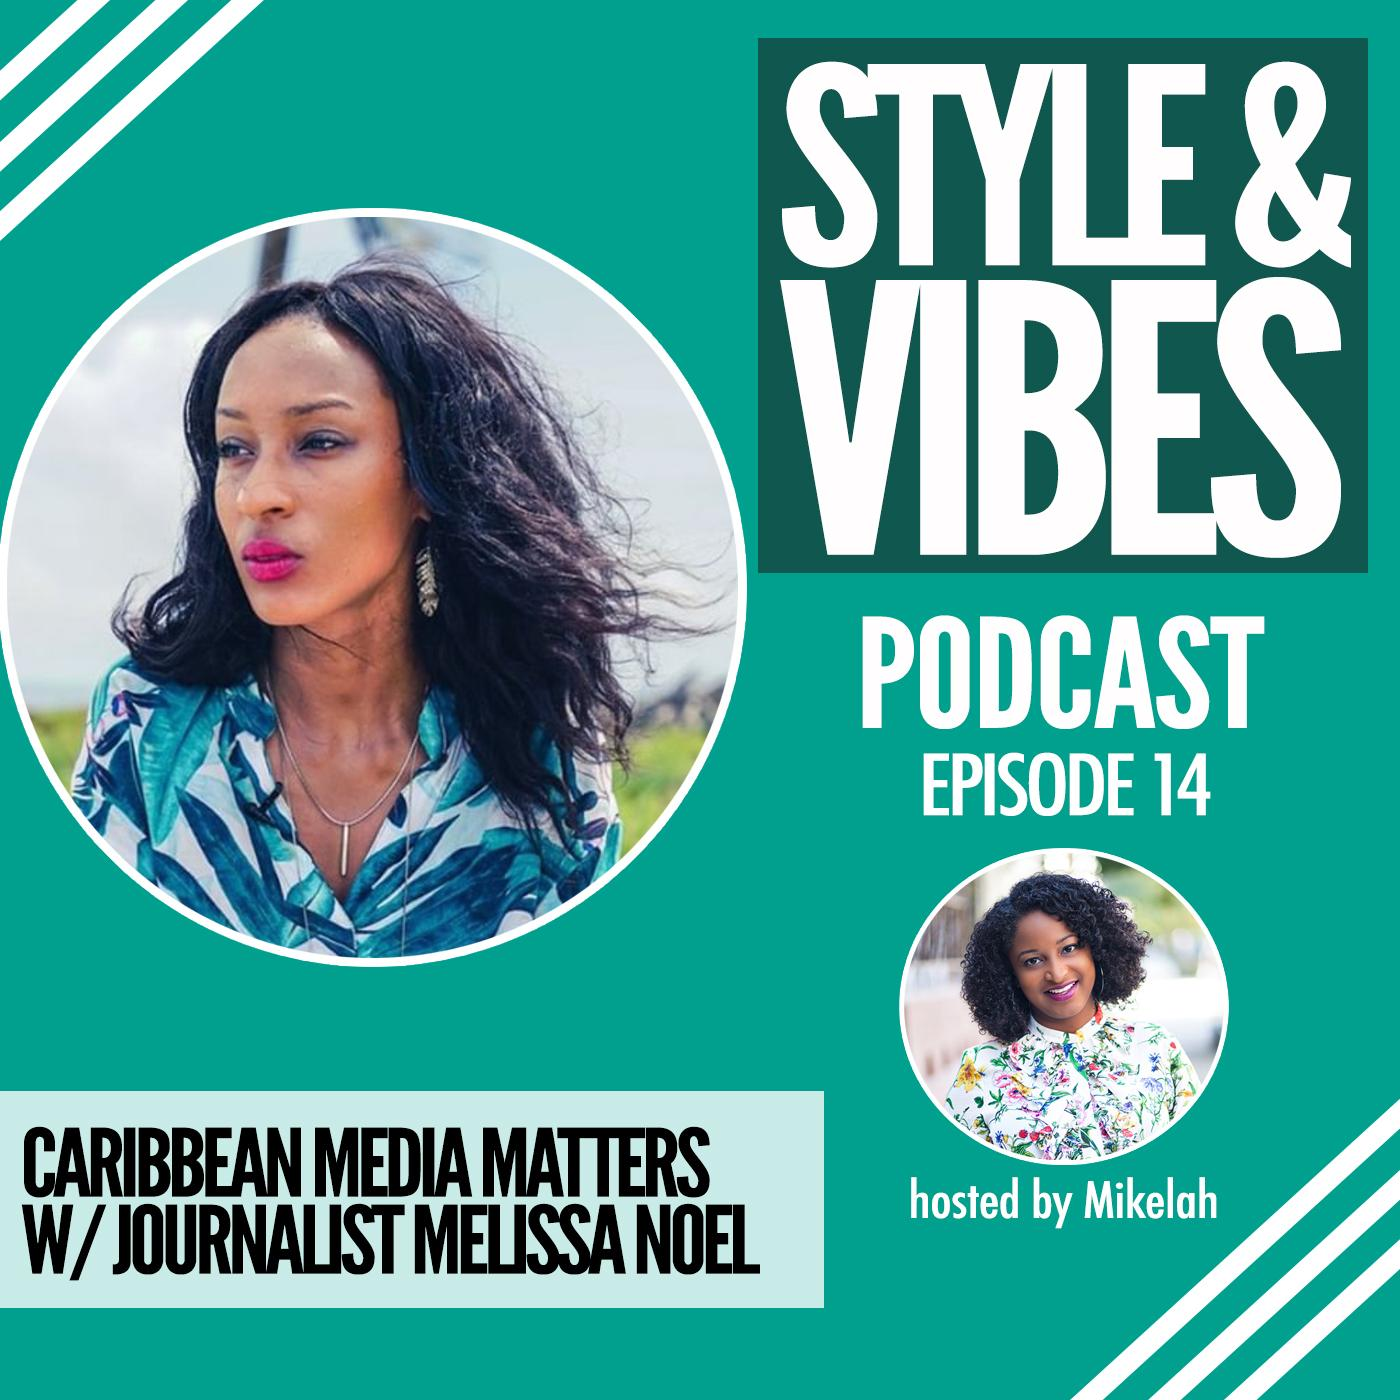 Caribbean Media Matters with Journalist Melissa Noel